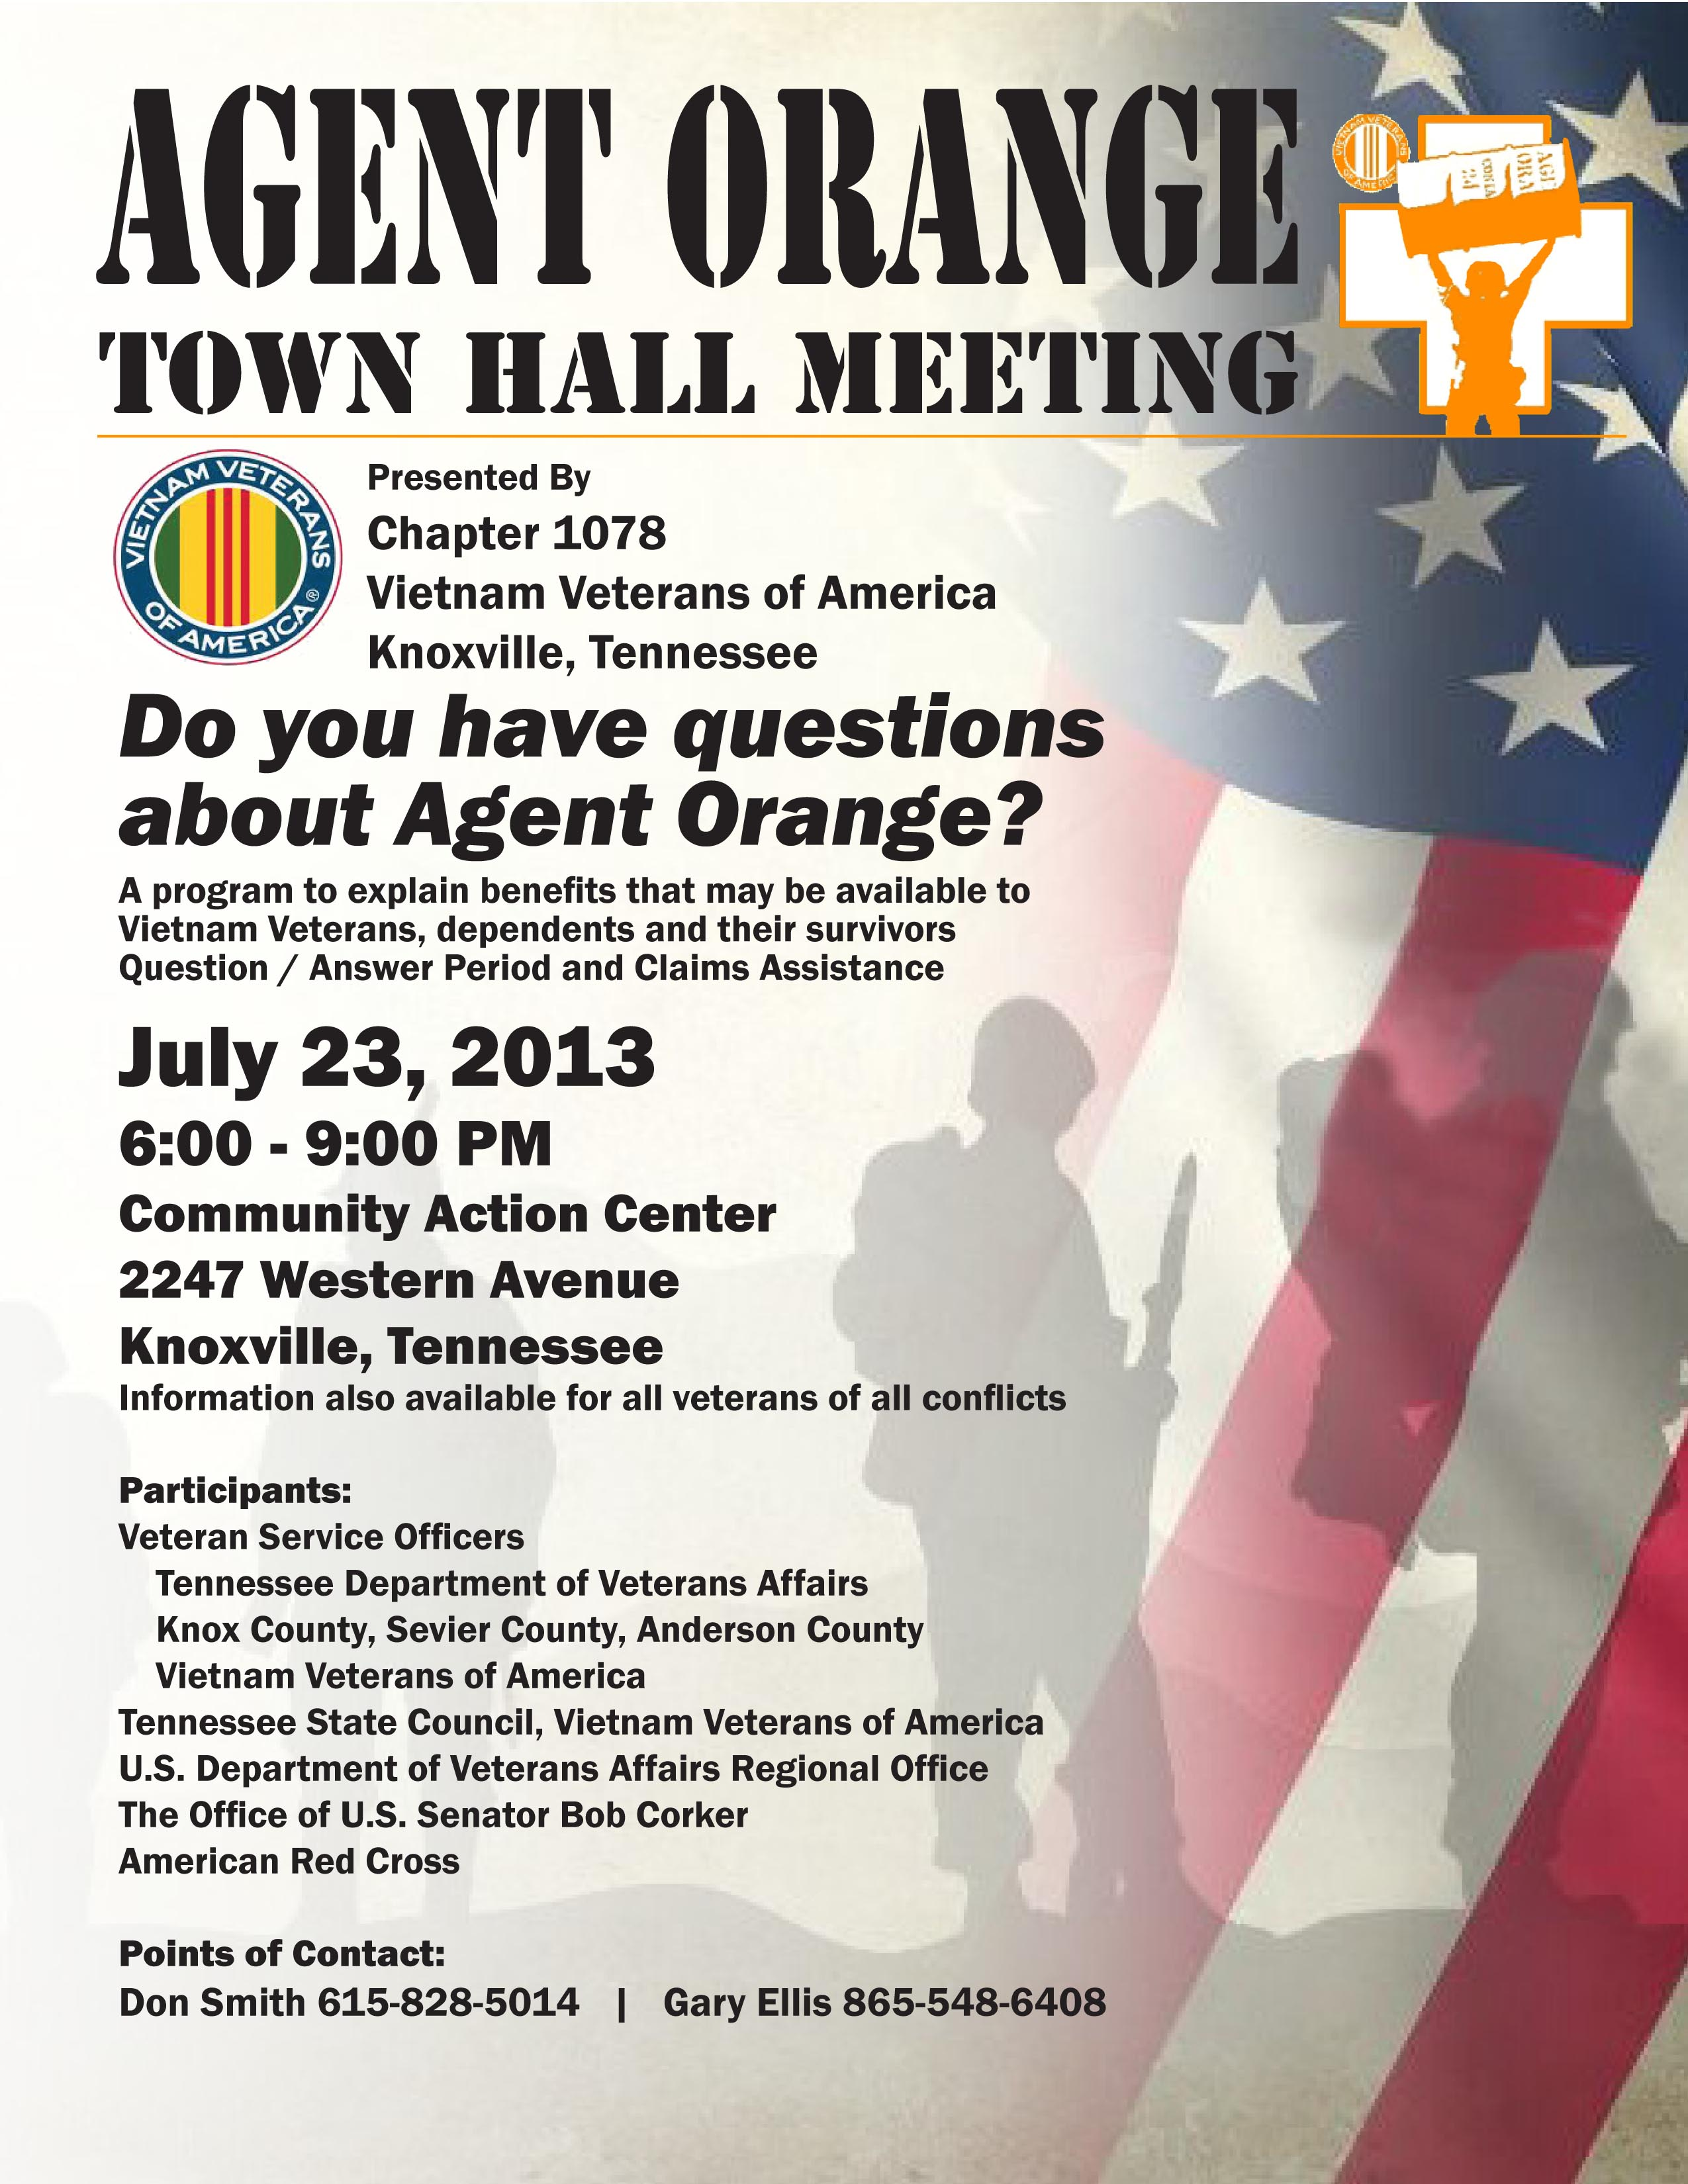 AGENT ORANGE Town Hall Meeting July 23! | Tri-Cities